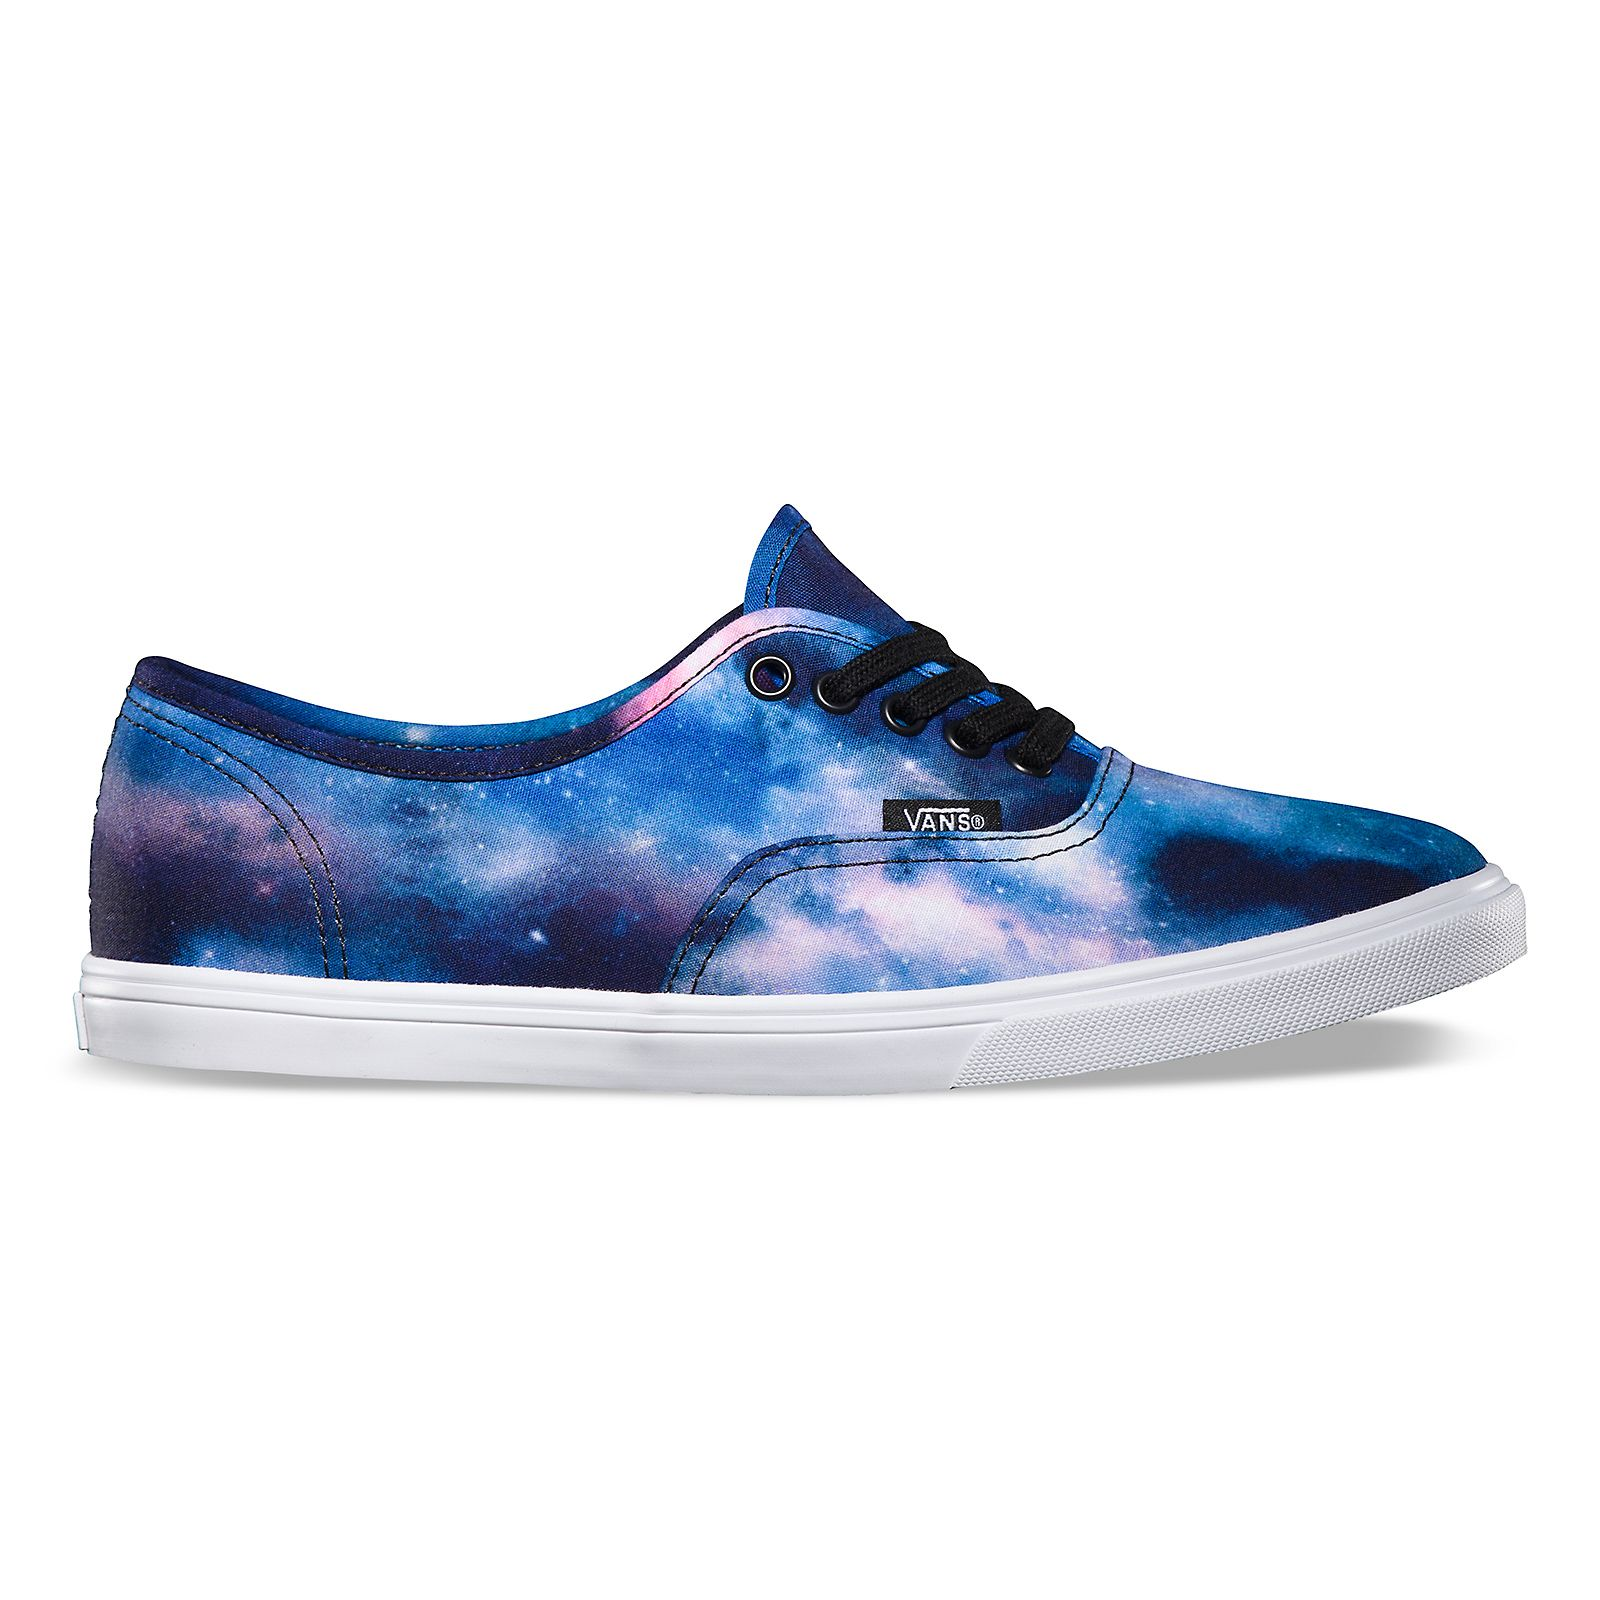 Vans Cosmic Galaxy Authentic Lo Pro I want these sooooooo